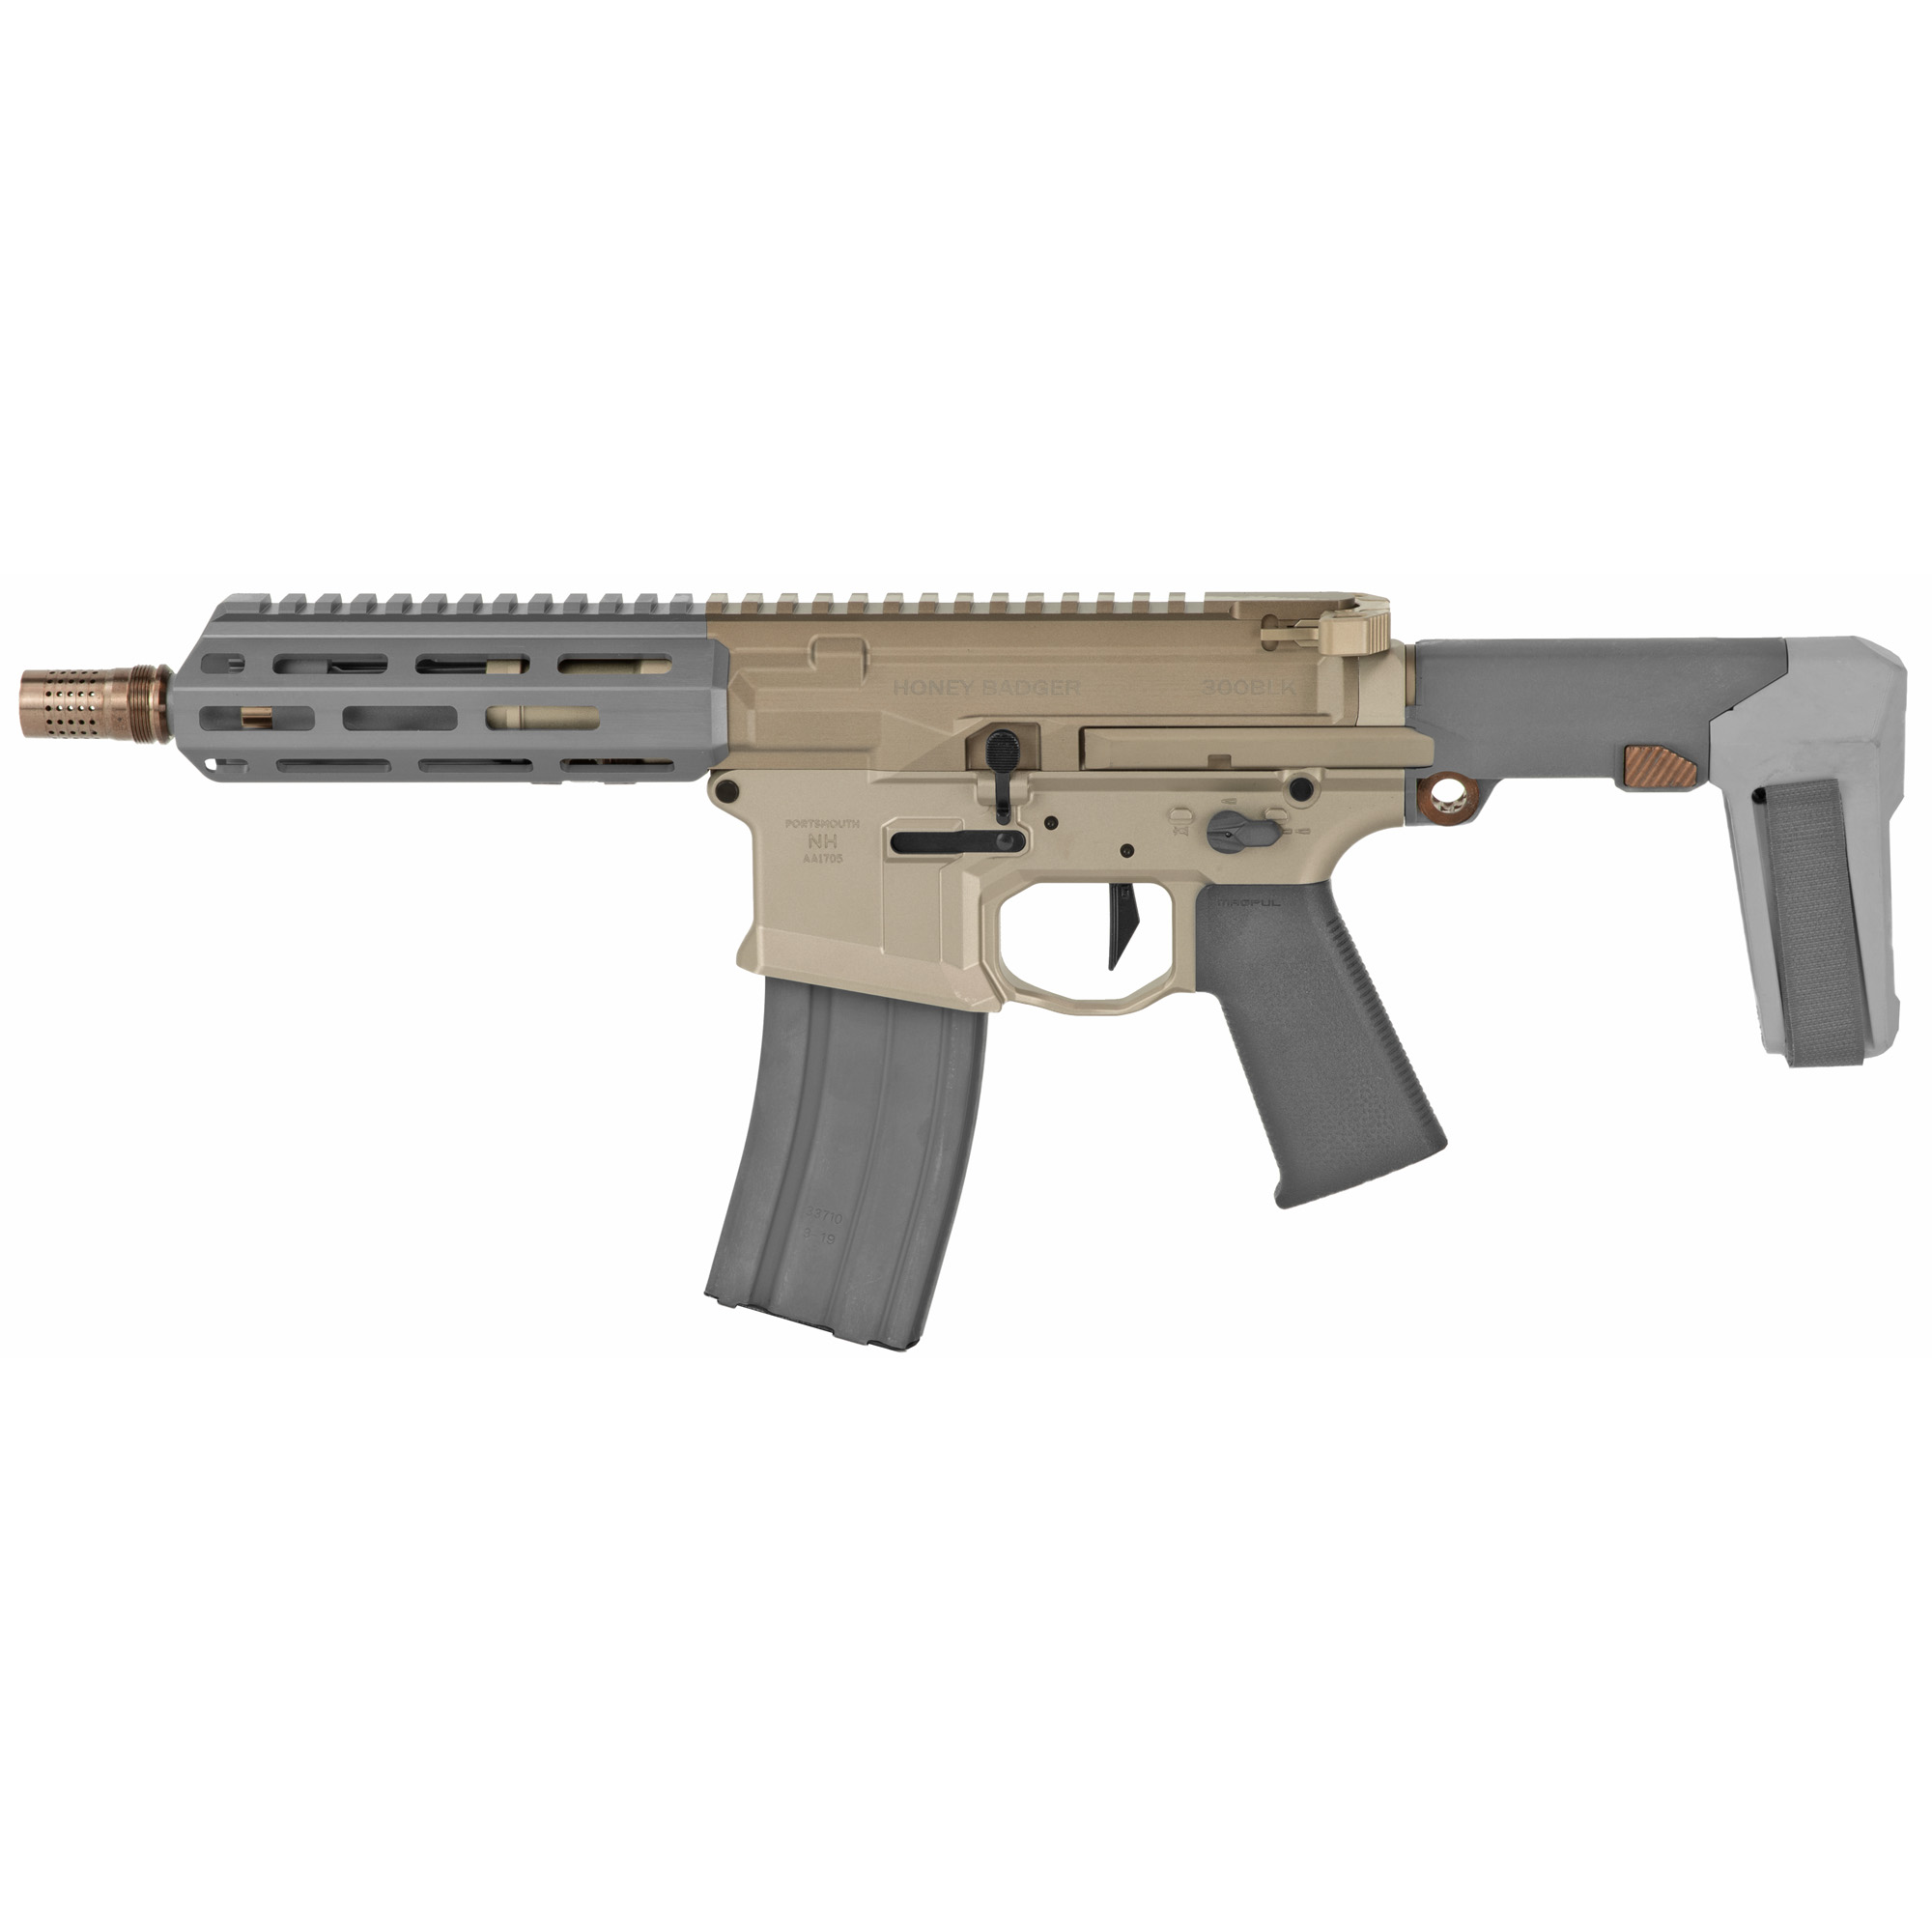 """The original Honey Badger was developed at AAC by previous owner and Q CEO"""" Kevin Brittingham and his R&D team at the request of an elite US special operations group looking to replace their MP5-SD's with an upgraded platform. Requirements included the ability to shoot a rifle caliber round while maintaining low visibility and excellent signature suppression. Developed in conjunction with 300 AAC Blackout"""" the Honey Badger was born"""" exceeded expectations"""" but never made it to the commercial market. Enter the Honey Badger by Q. At first glance"""" this Honey Badger appears to be the same as the original. Q focused on taking the iconic 'Badger to the next level and improved upon every technical aspect of the first-generation design. From the gas system to the trigger"""" and telescoping pistol brace - HB 2.0 does not disappoint."""